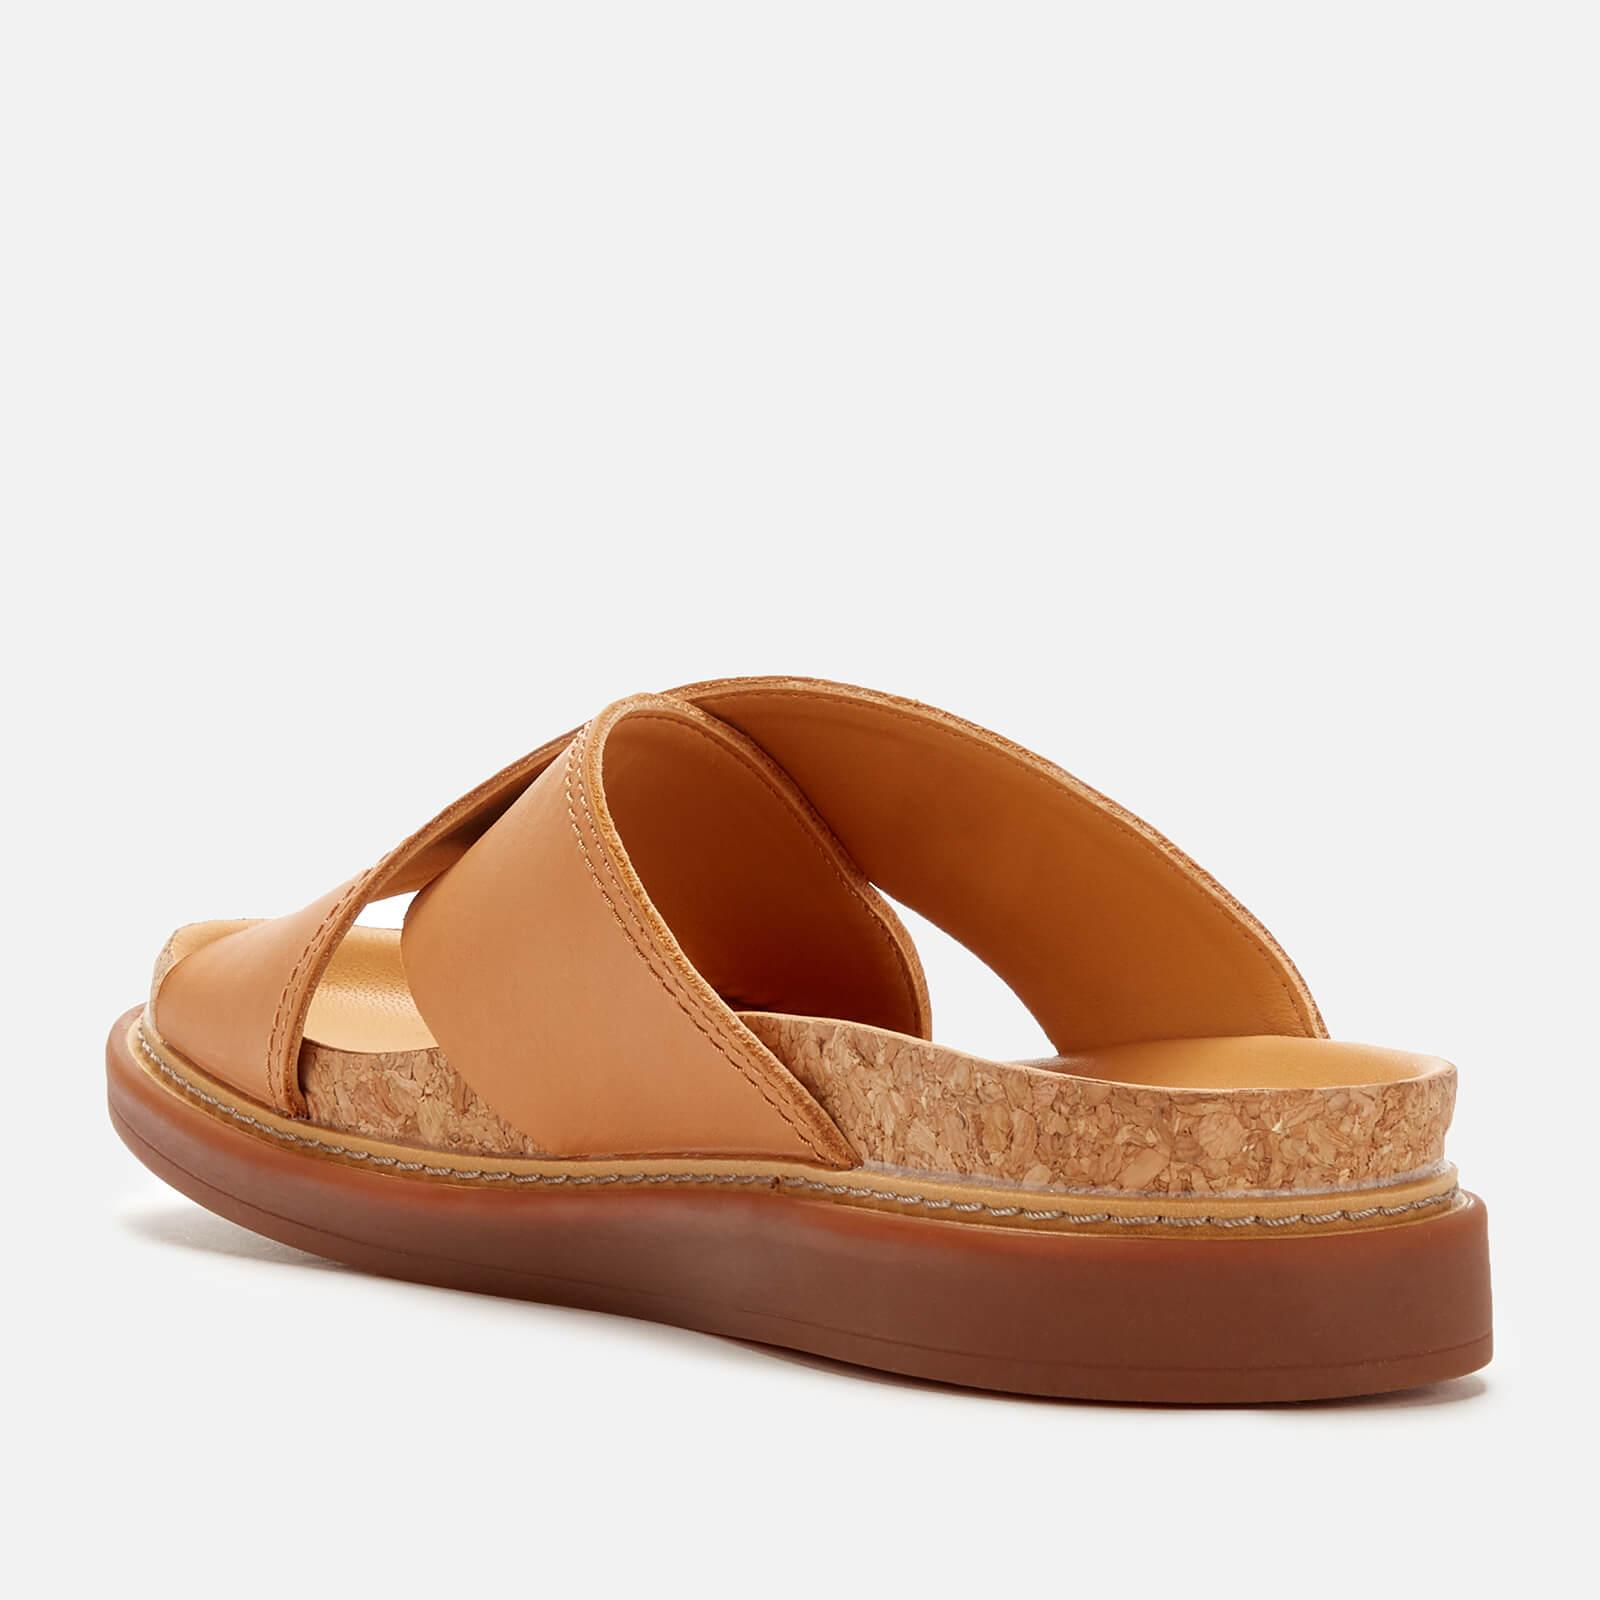 7646854b42f6 Lyst - Clarks Trace Drift Leather Cross Front Sandals in Brown ...